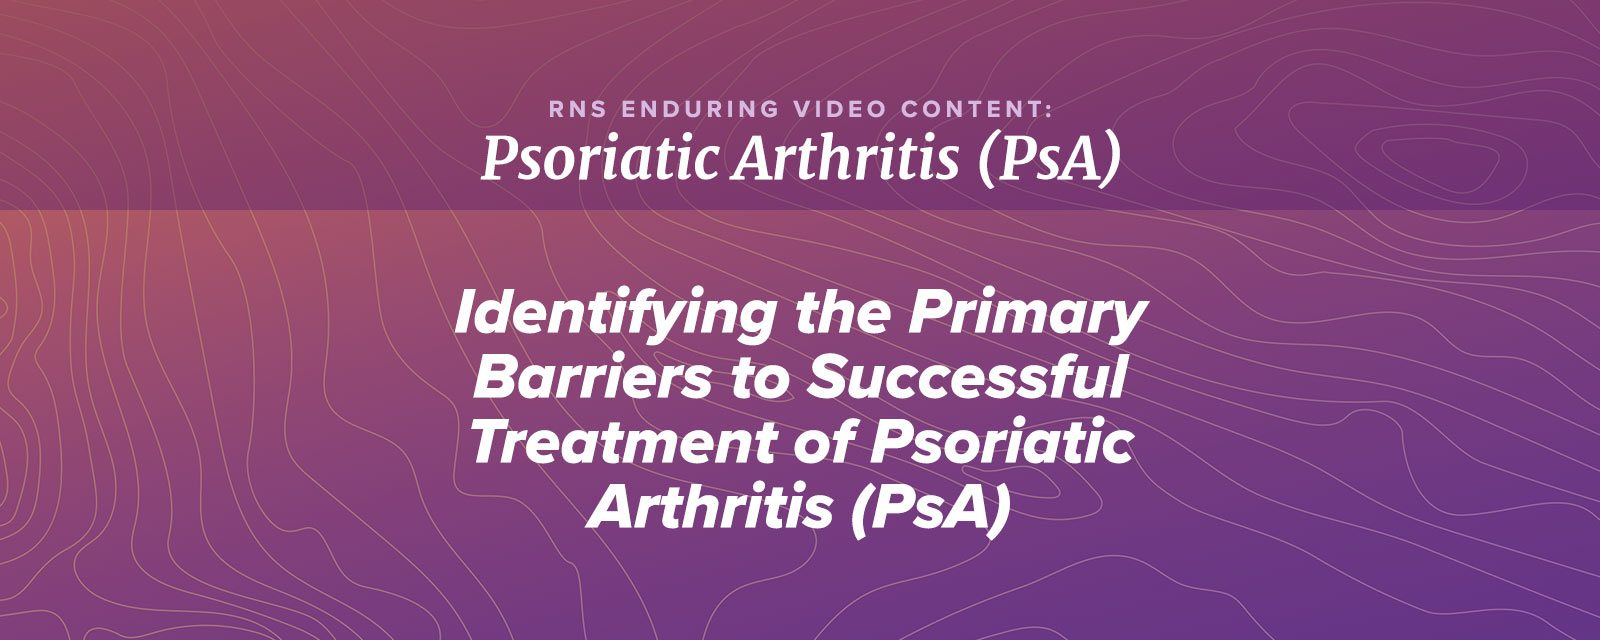 Identifying the Primary Barriers to Successful Treatment of PsA